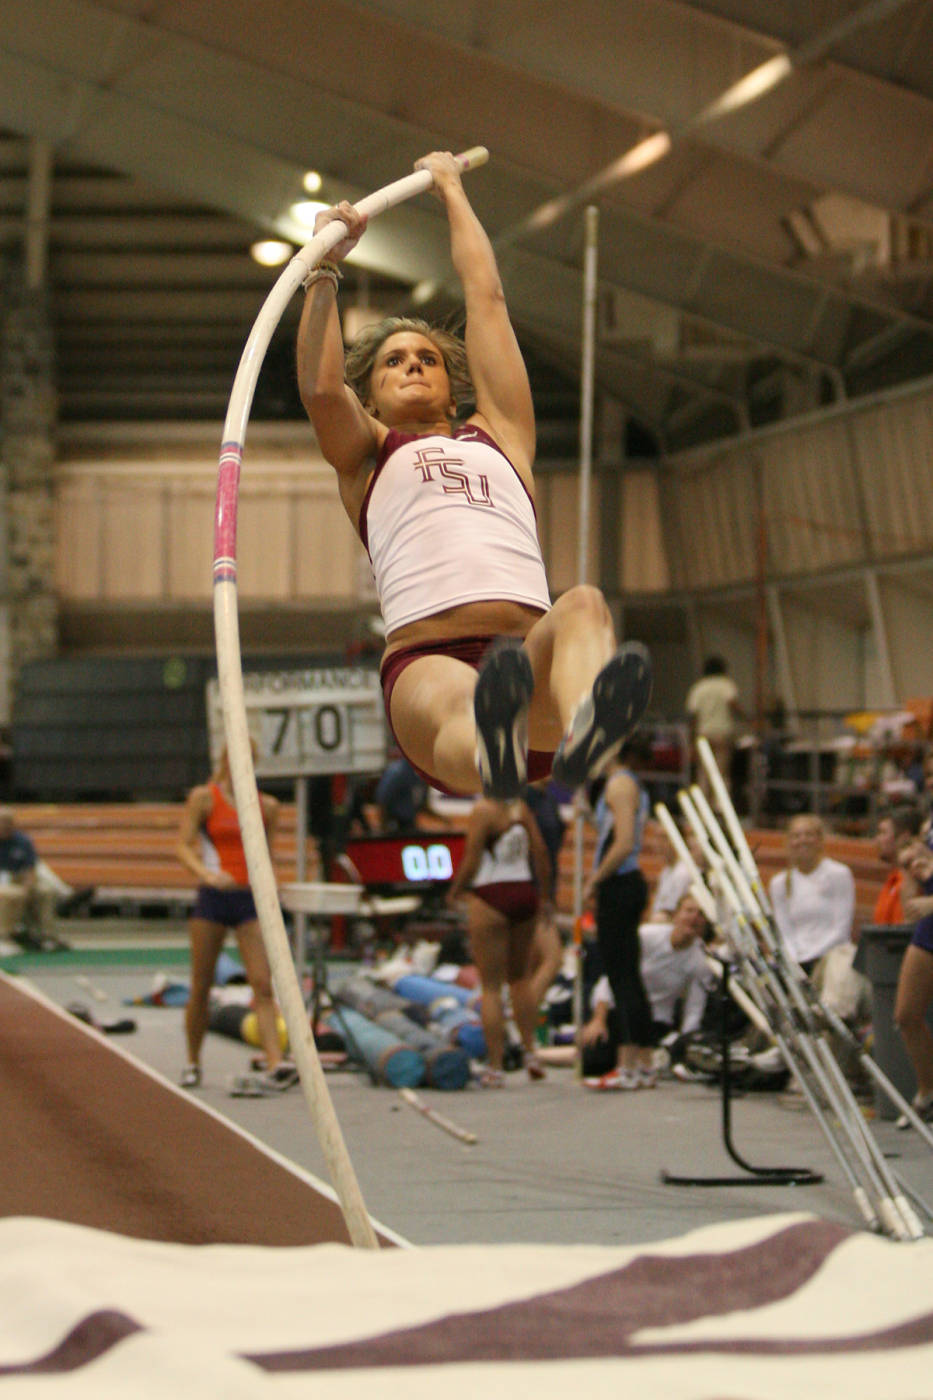 The 2009 ACC Indoor Championships